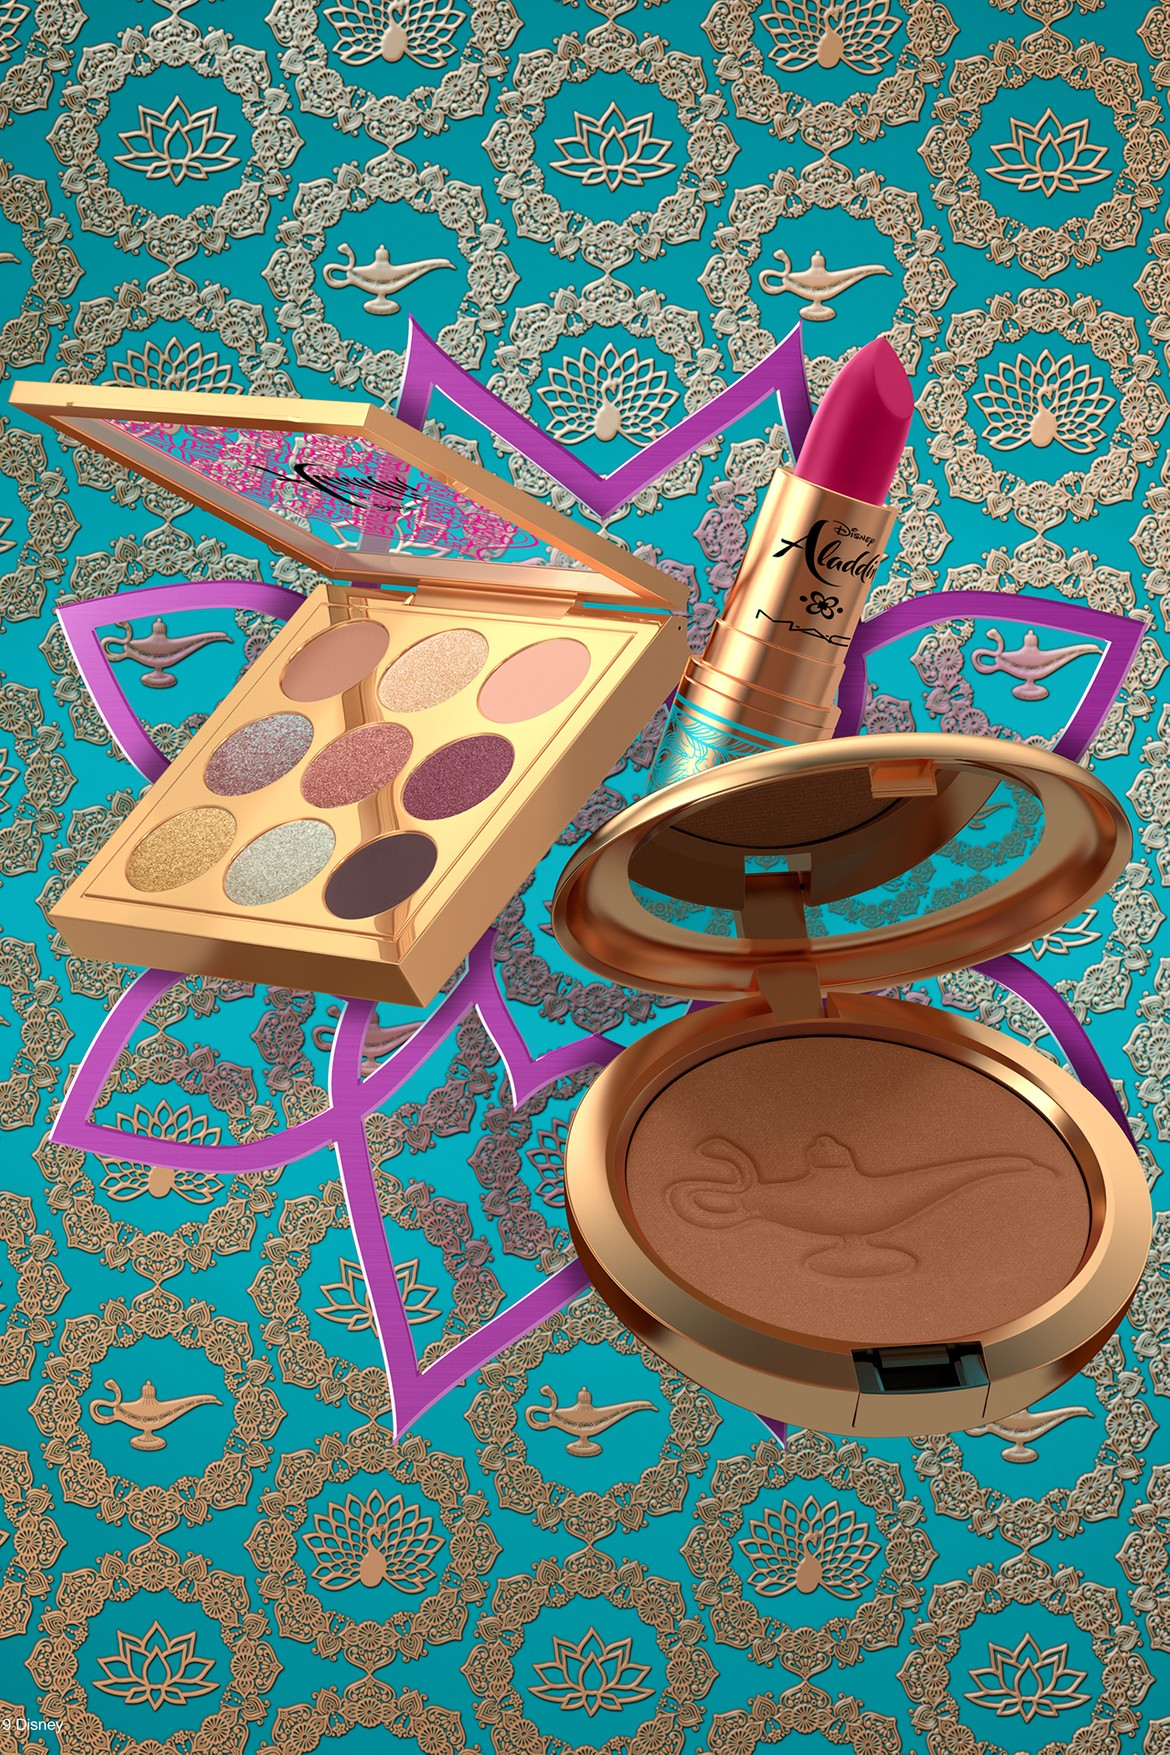 Disney X Mac Aladdin Makeup